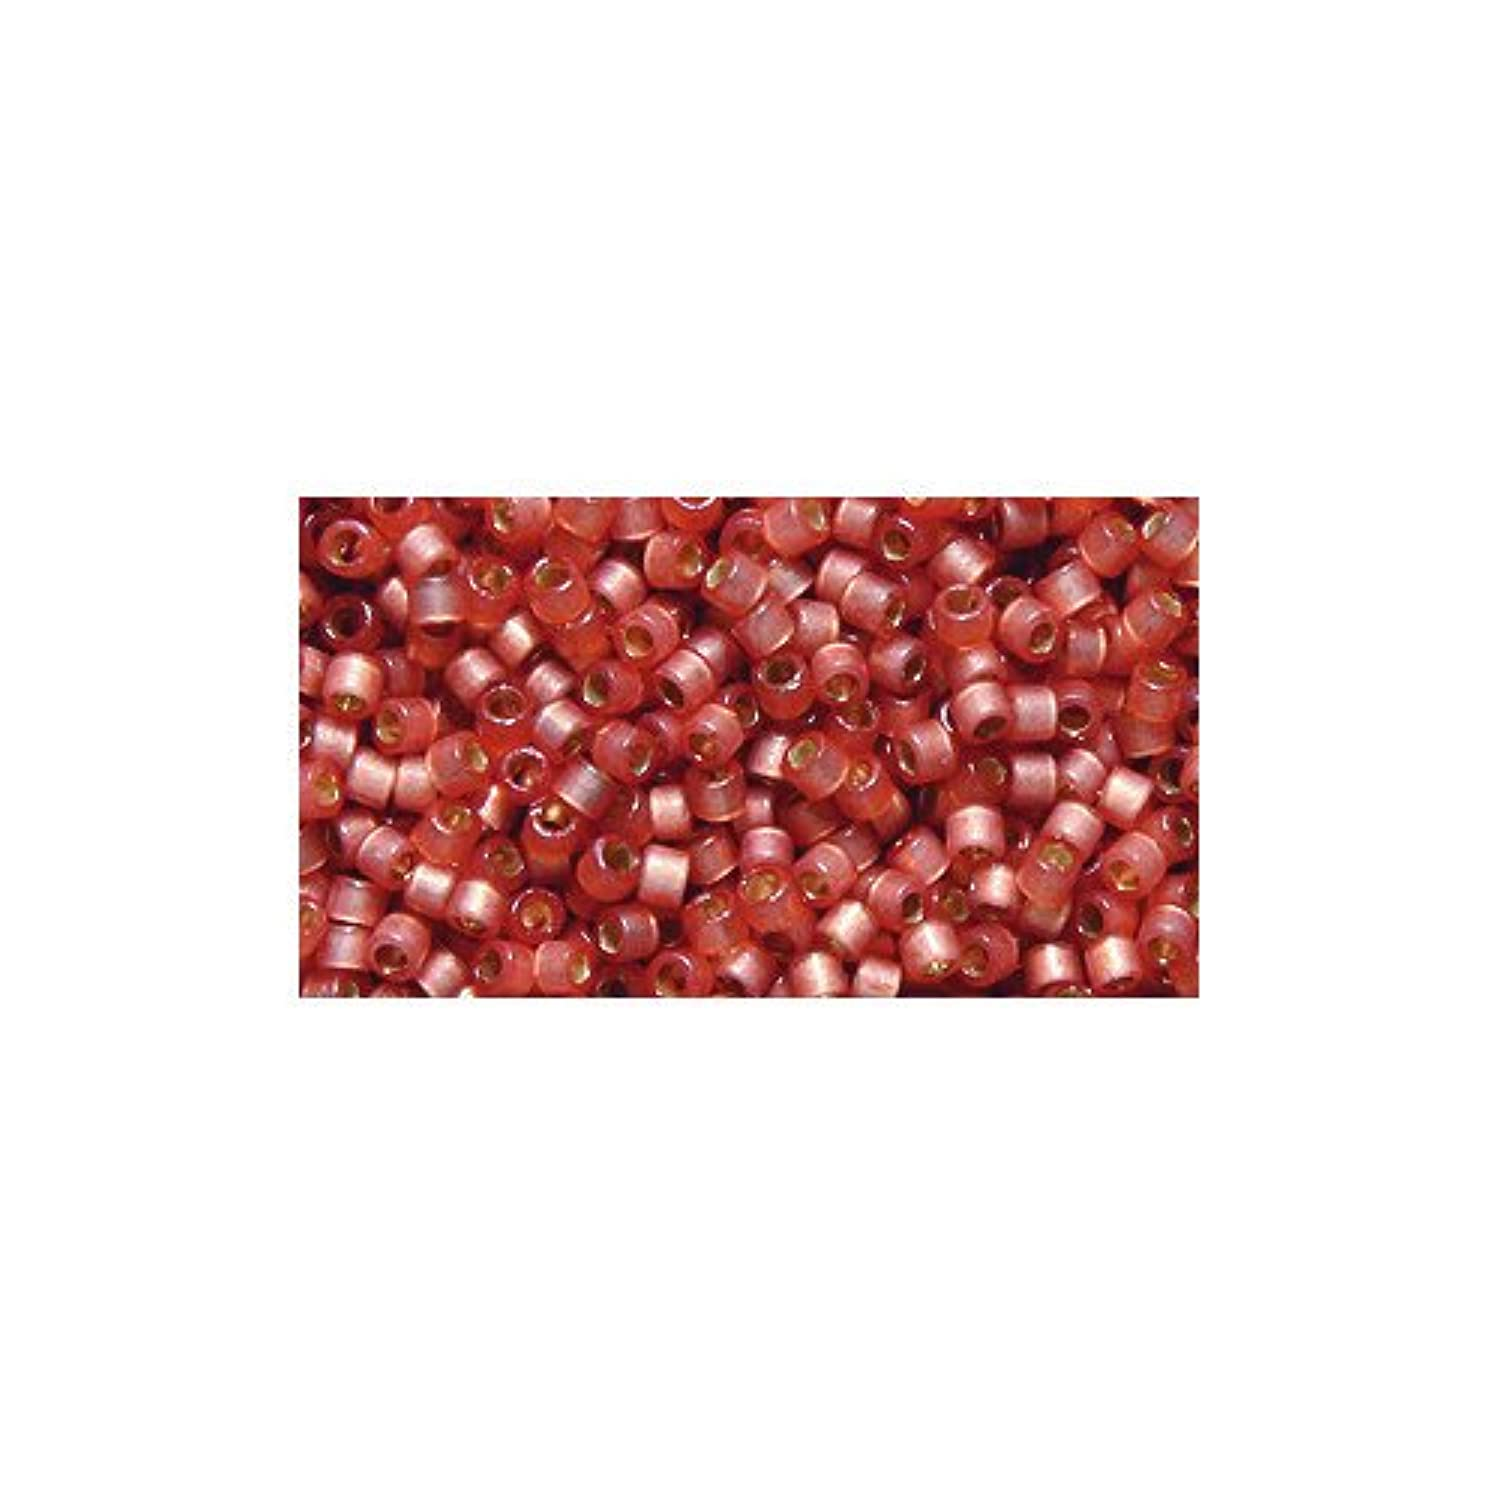 Miyuki Delica Seed Bead 11/0 DB2172, Duracoat Silver Lined Rose Copper Satin, 9-Gram/Pack